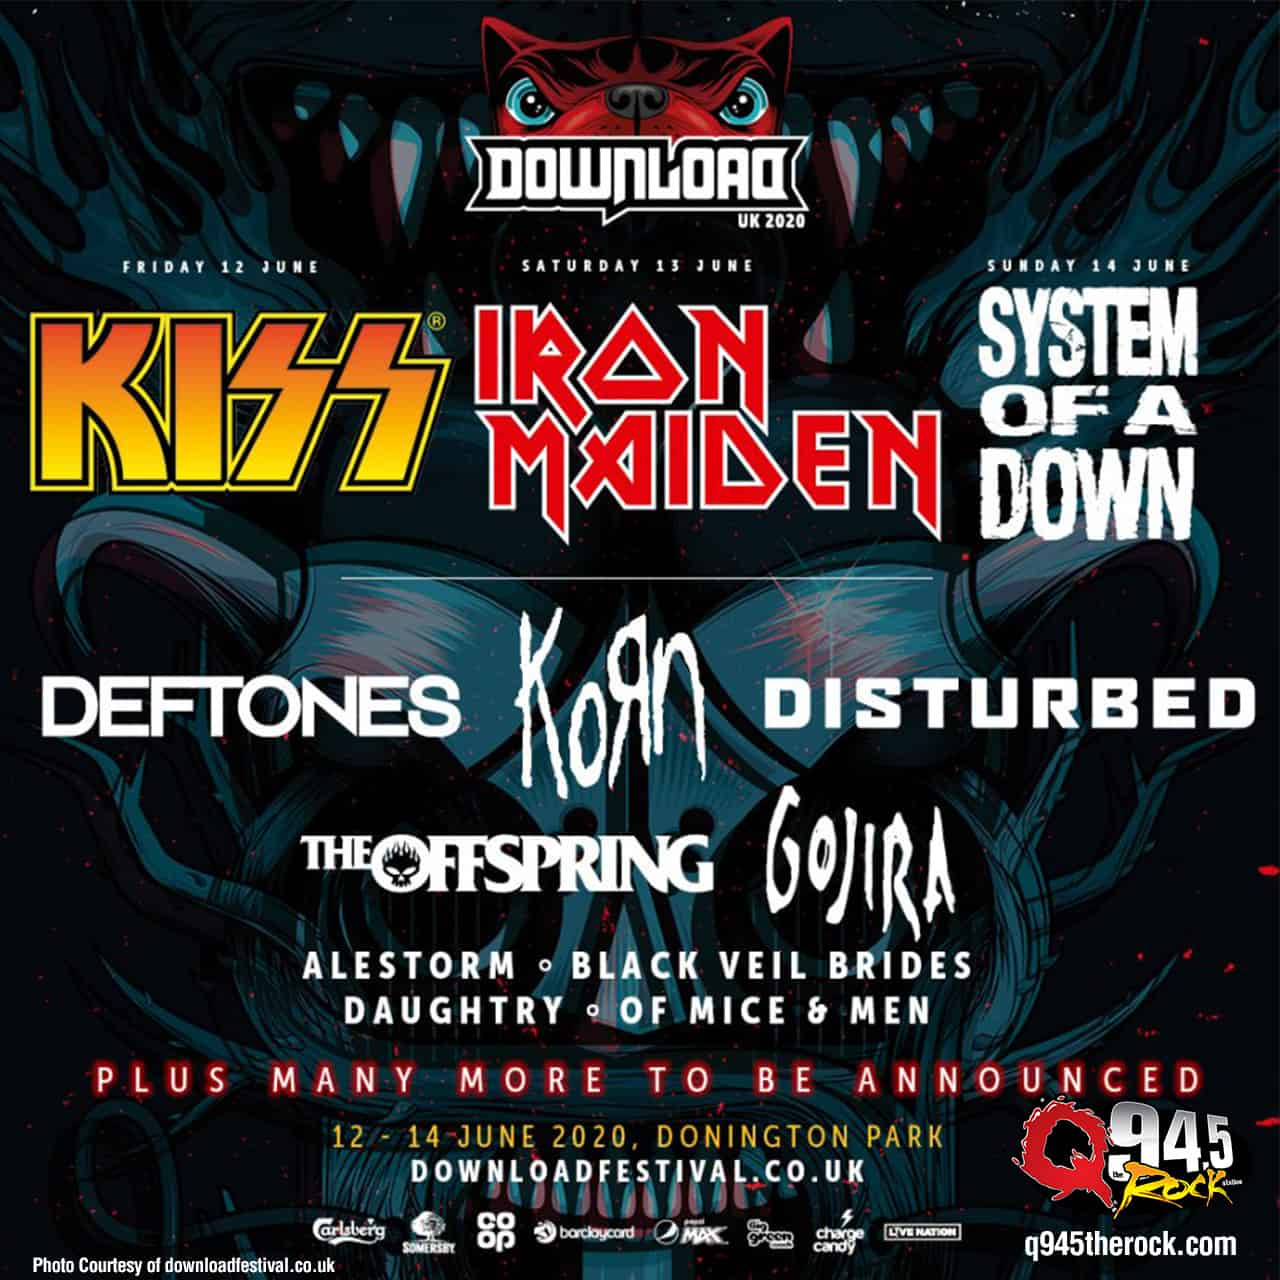 Iron Maiden Tour 2020.Iron Maiden Kiss And System Of A Down Headlining Download 2020